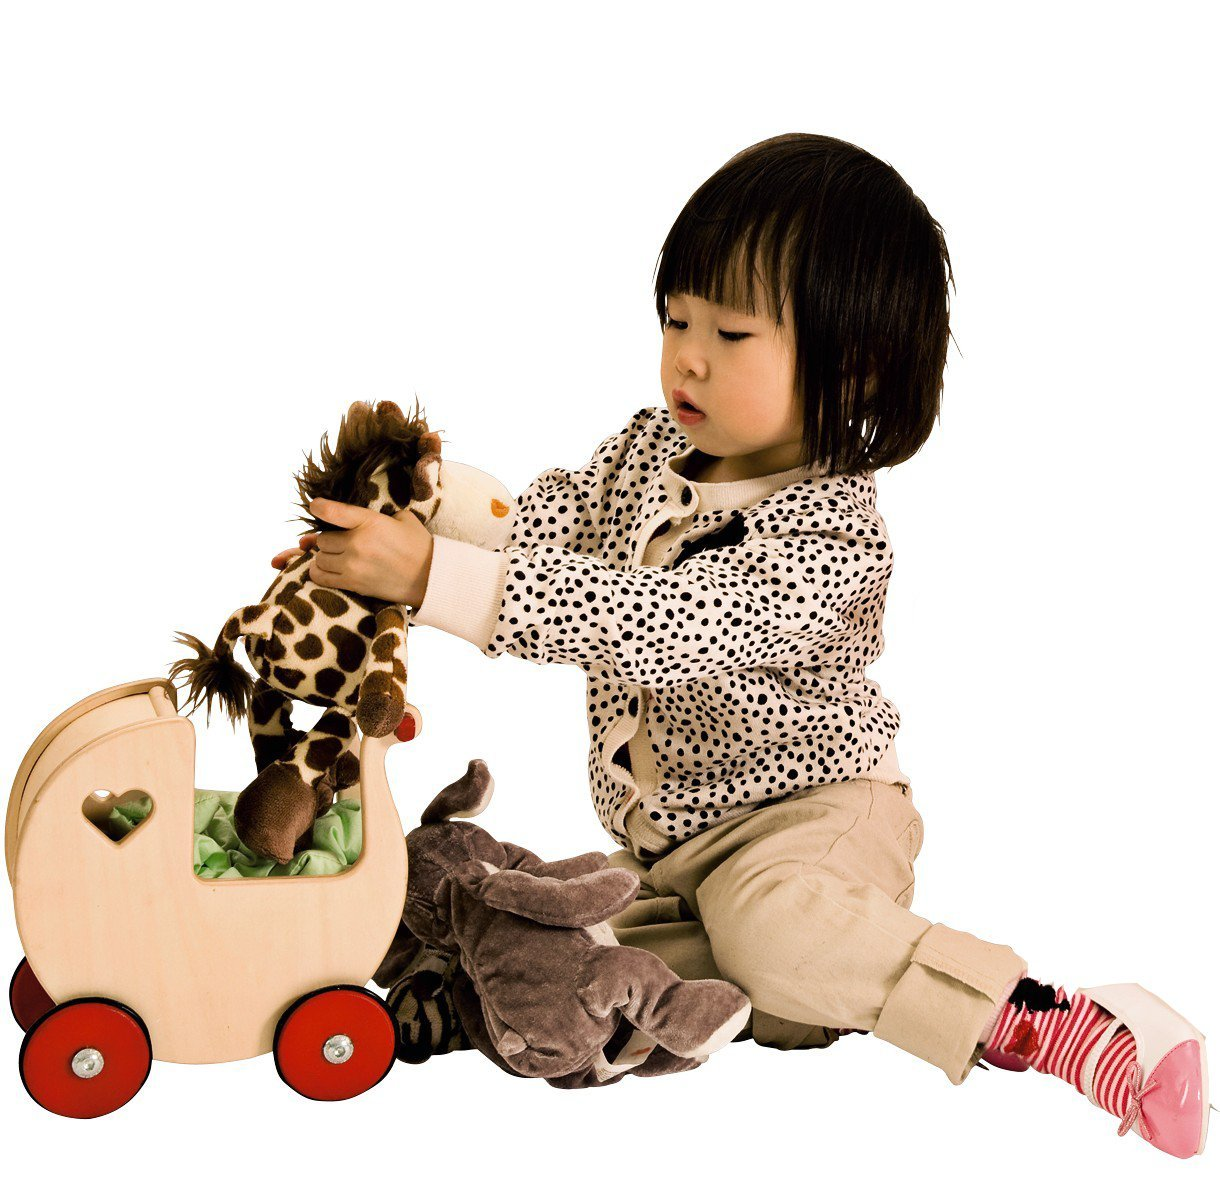 Moover Miniature Doll Pram, Natural Wood – Fits Very Small Dolls up to 7'' Tall